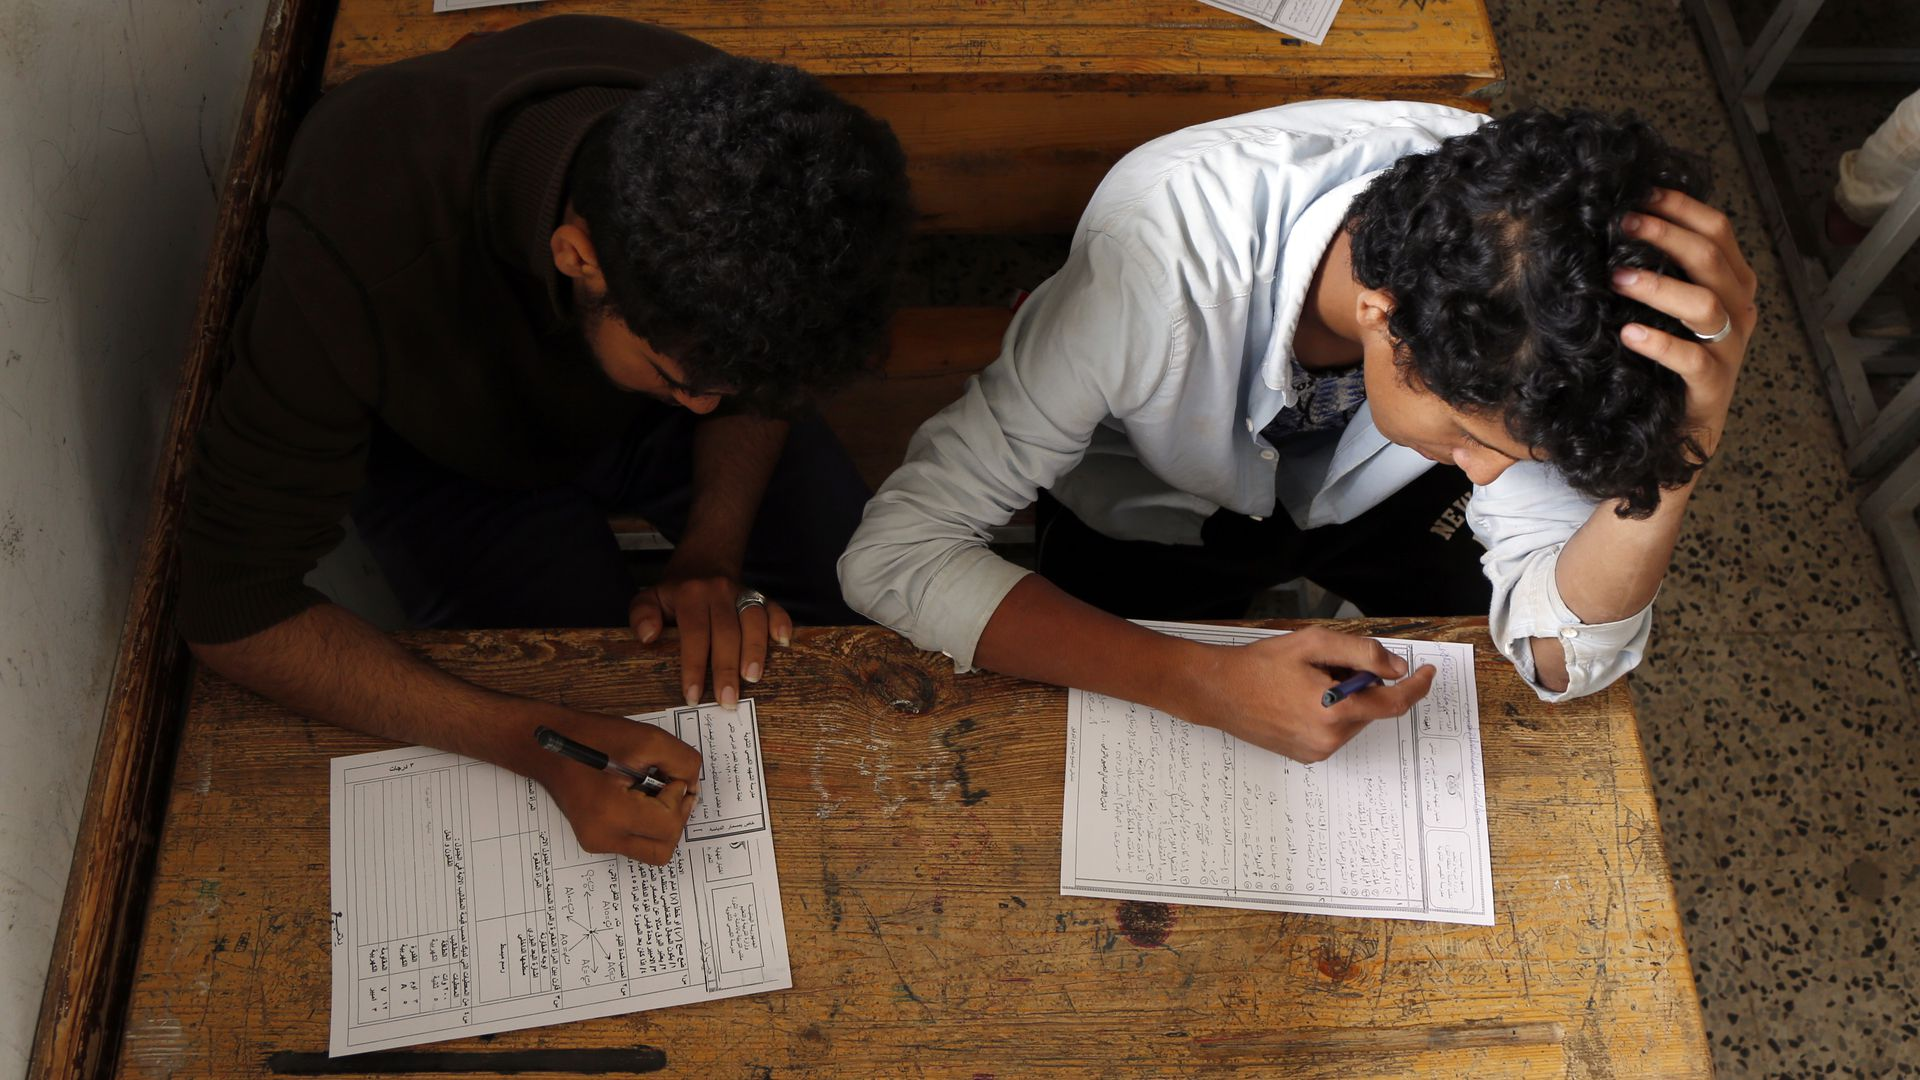 In this image, two male students sit at a desk while taking a test on separate sheets of paper.